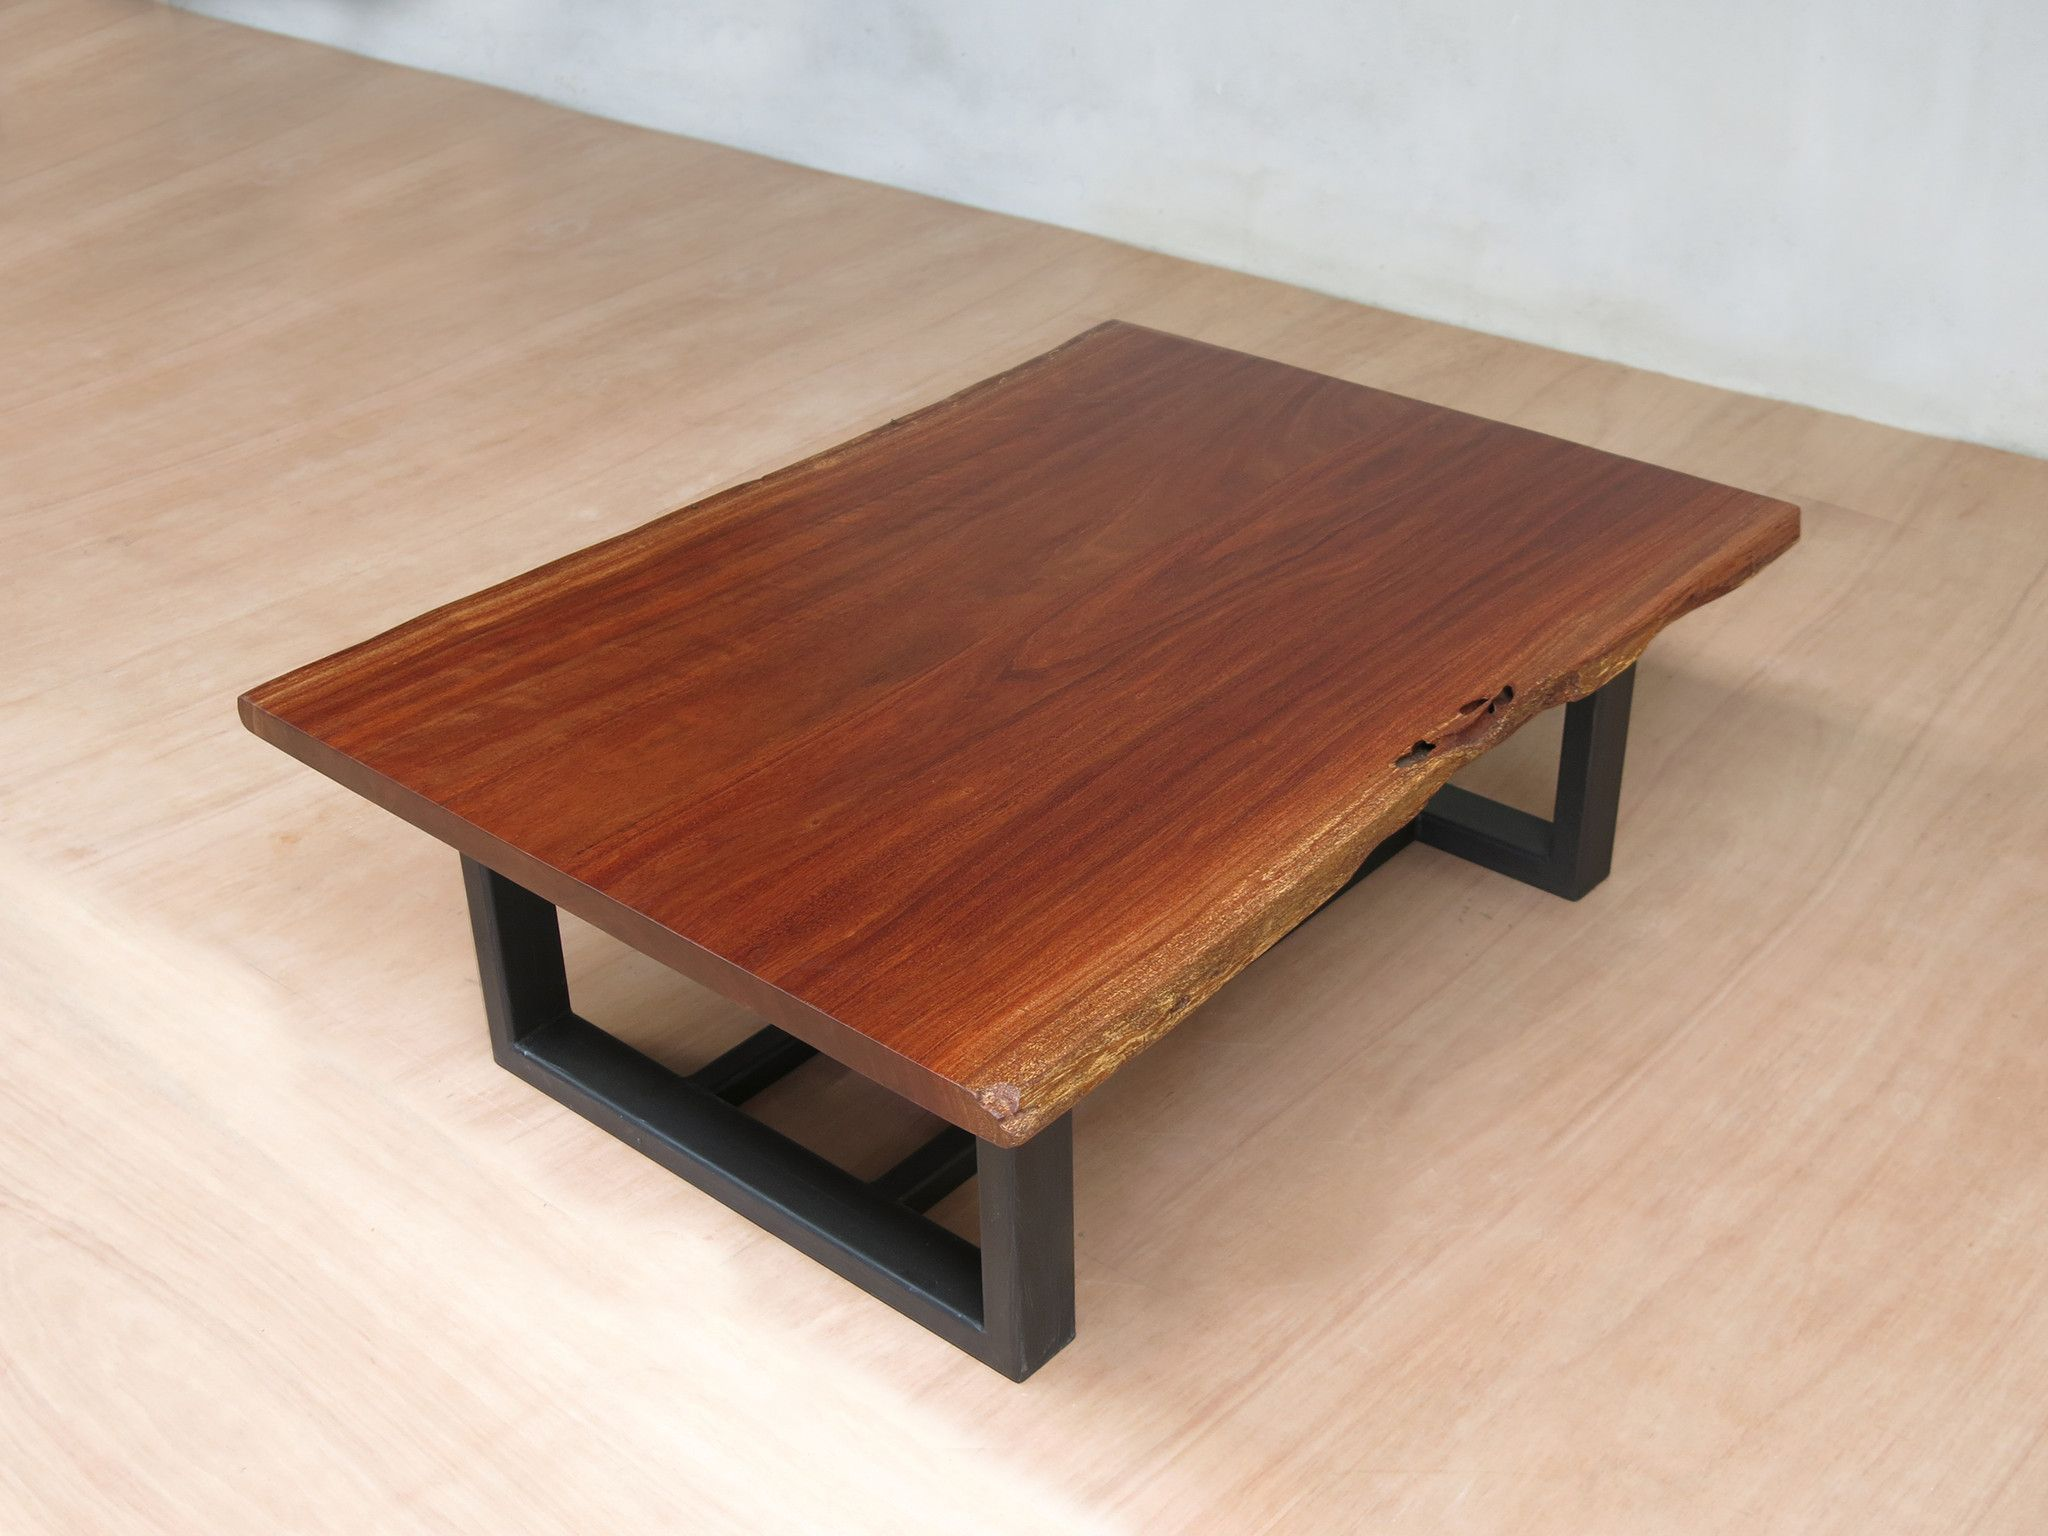 Genial Live Edge Slab Coffee Table | Walnut Top | Metal Legs | U2013 Masaya U0026 Co.